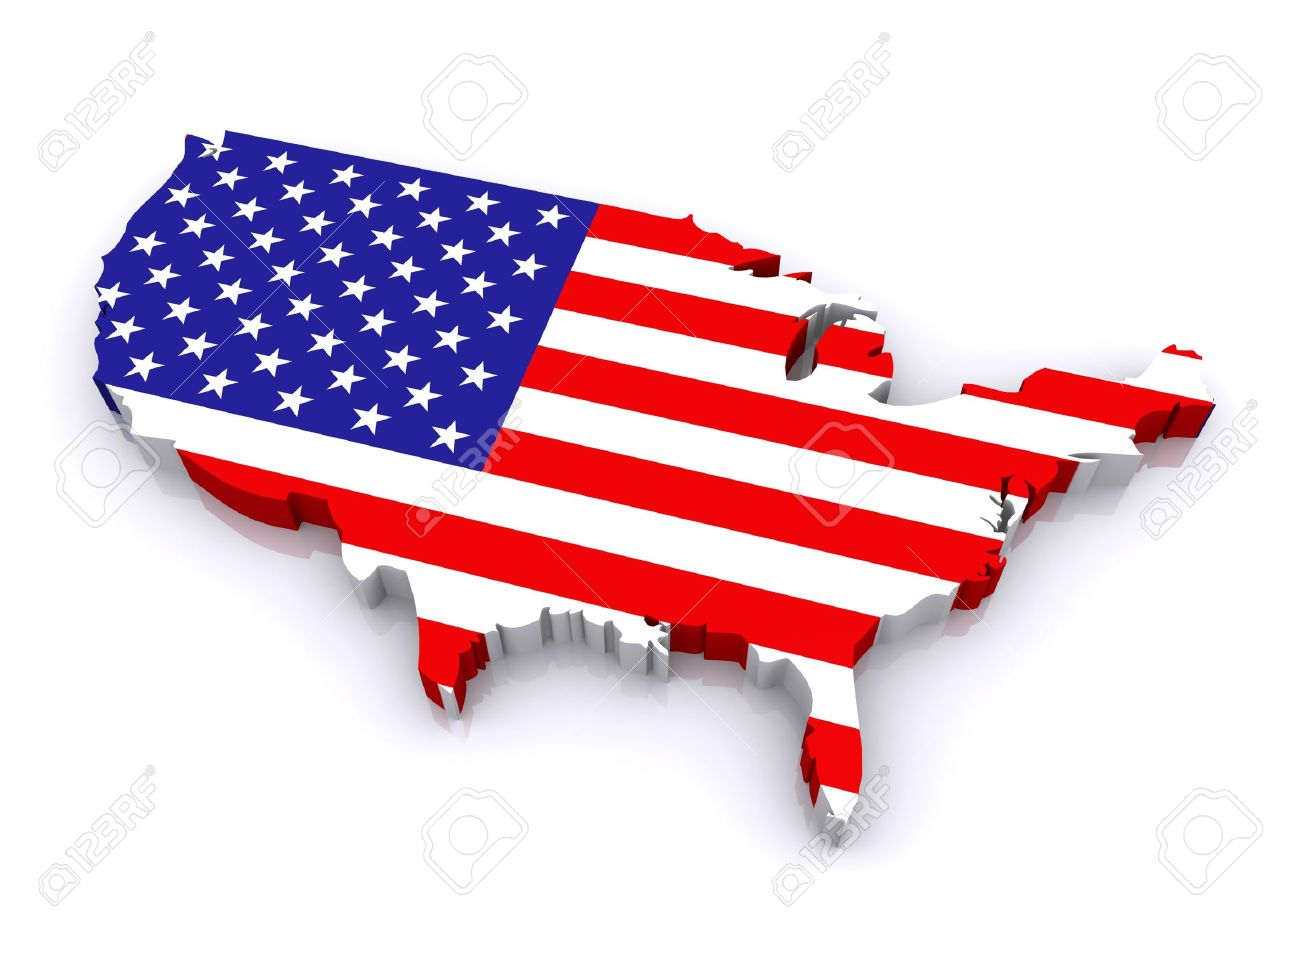 D Map Of United States Stock Photo Picture And Royalty Free - 3d map usa states